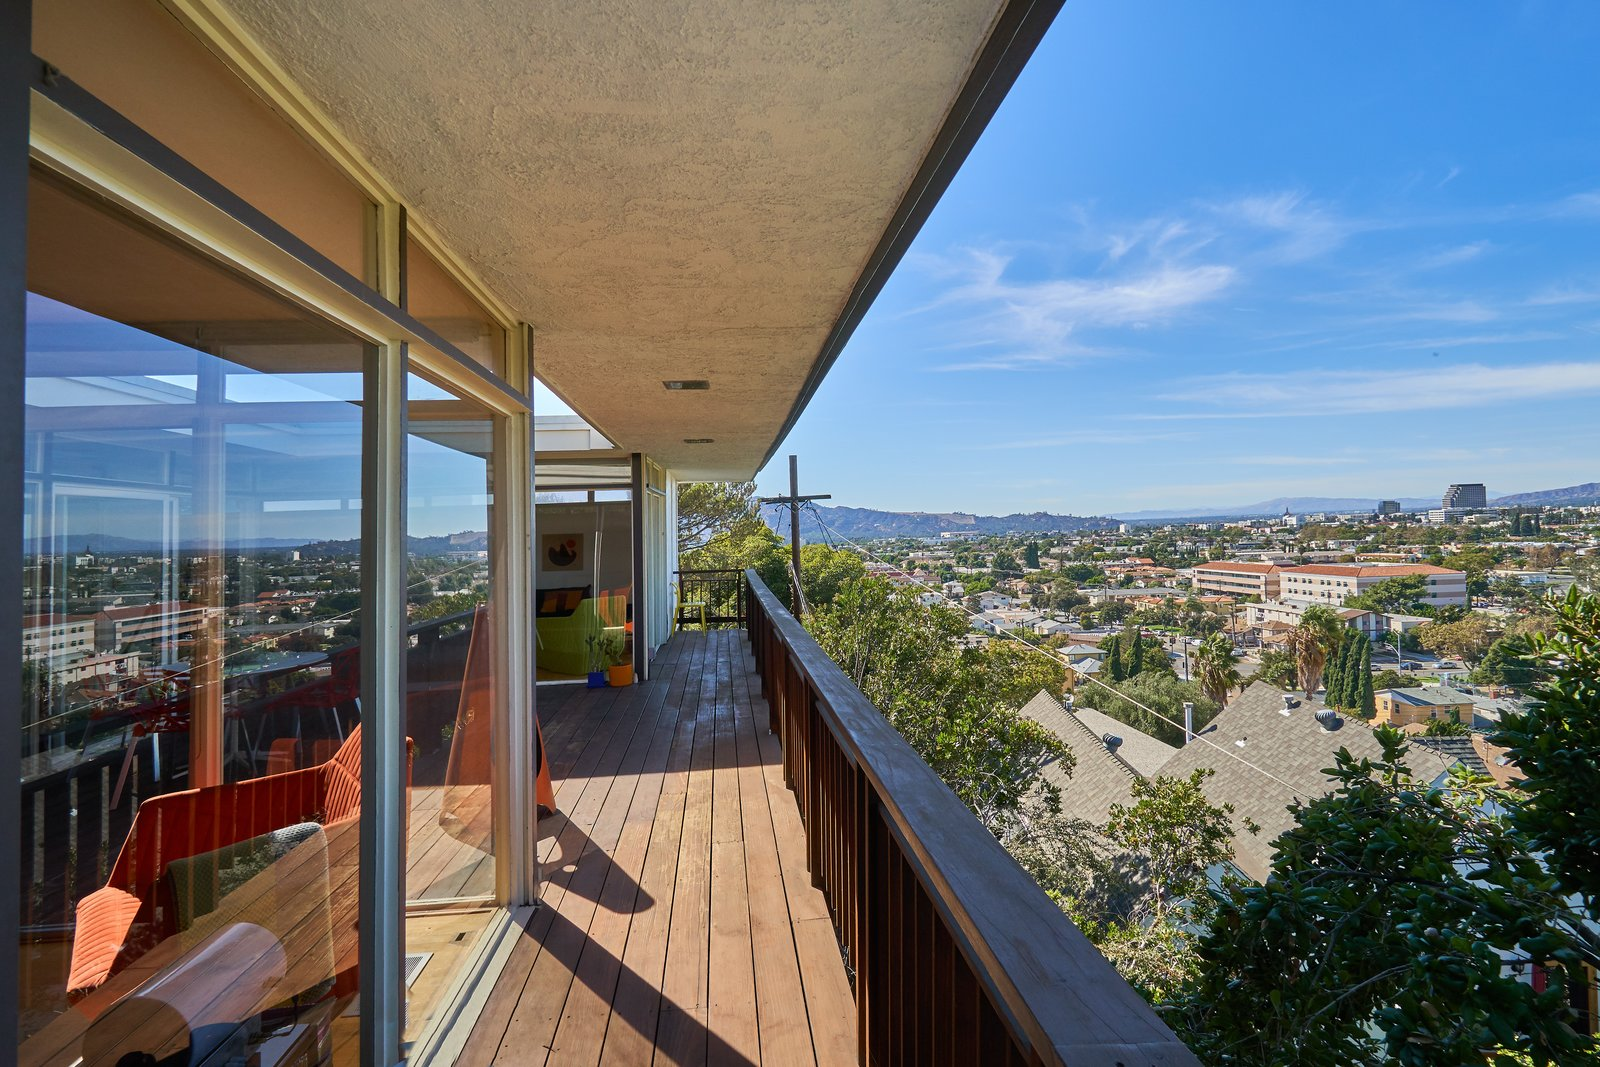 The rear of the house opens out to the rest of the city, while the facade facing the street is more closed off. Tagged: Outdoor and Wood Patio, Porch, Deck.  Photo 11 of 14 in A Midcentury-Modern Home in L.A. Designed by Richard Banta Is For Sale For $899K